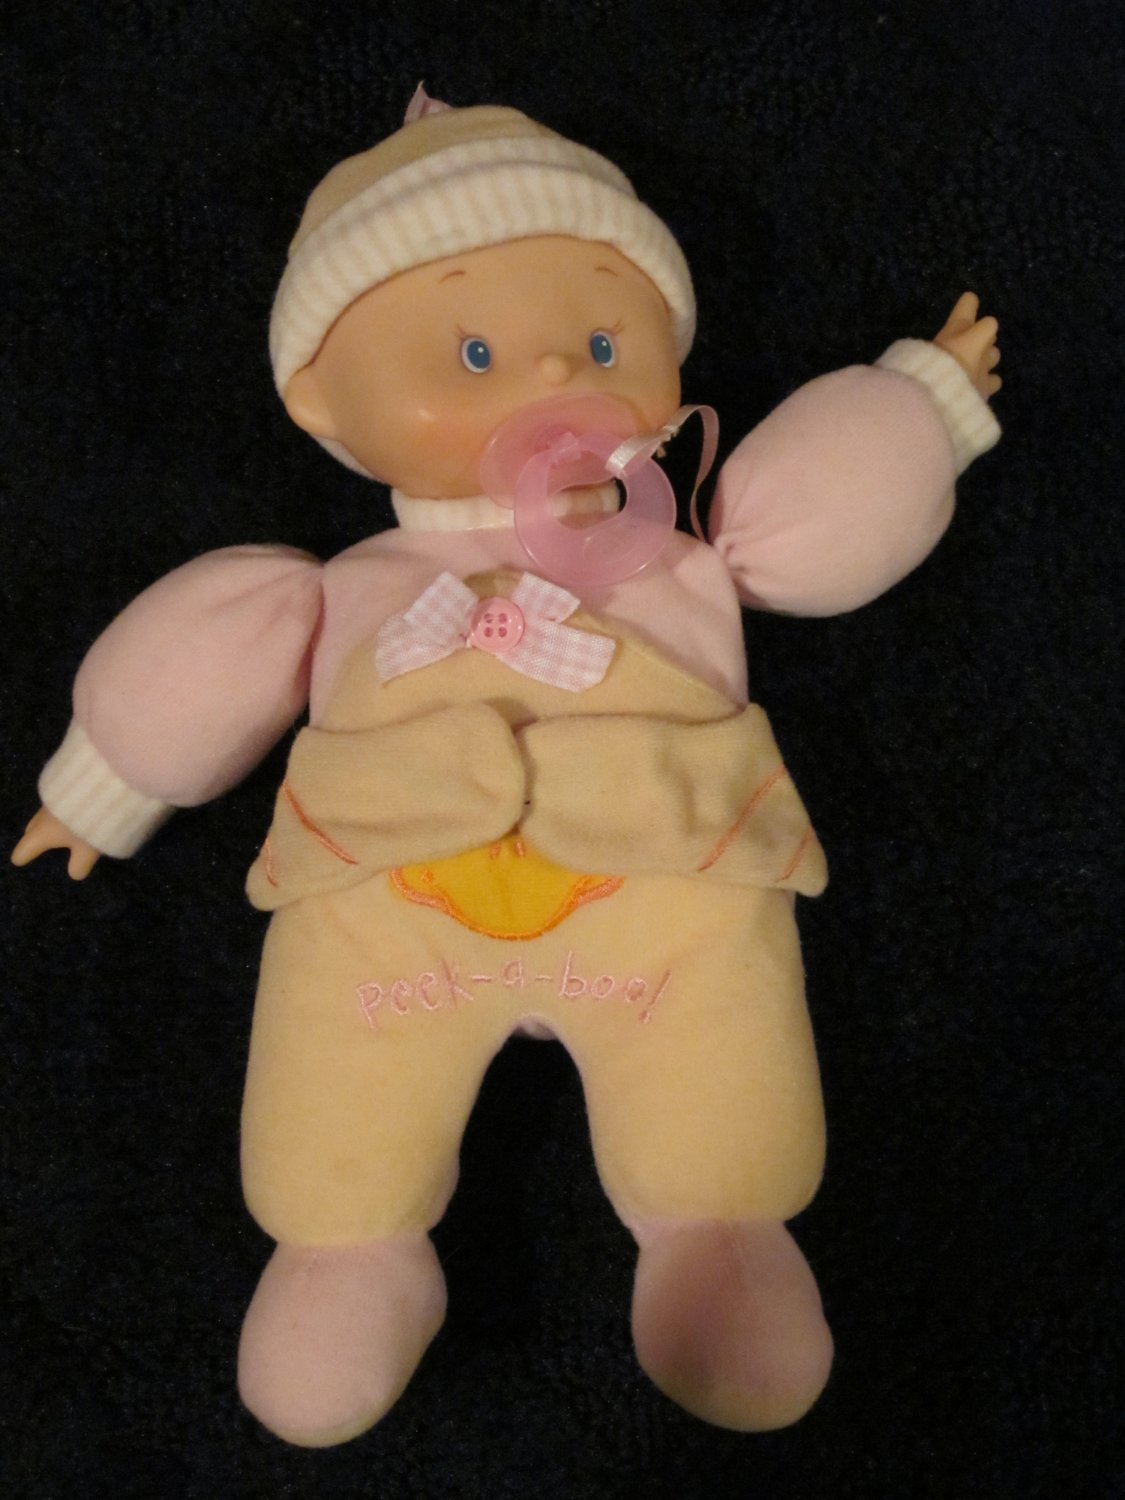 Cititoy Doll with pacifier and Peek a Boo on front